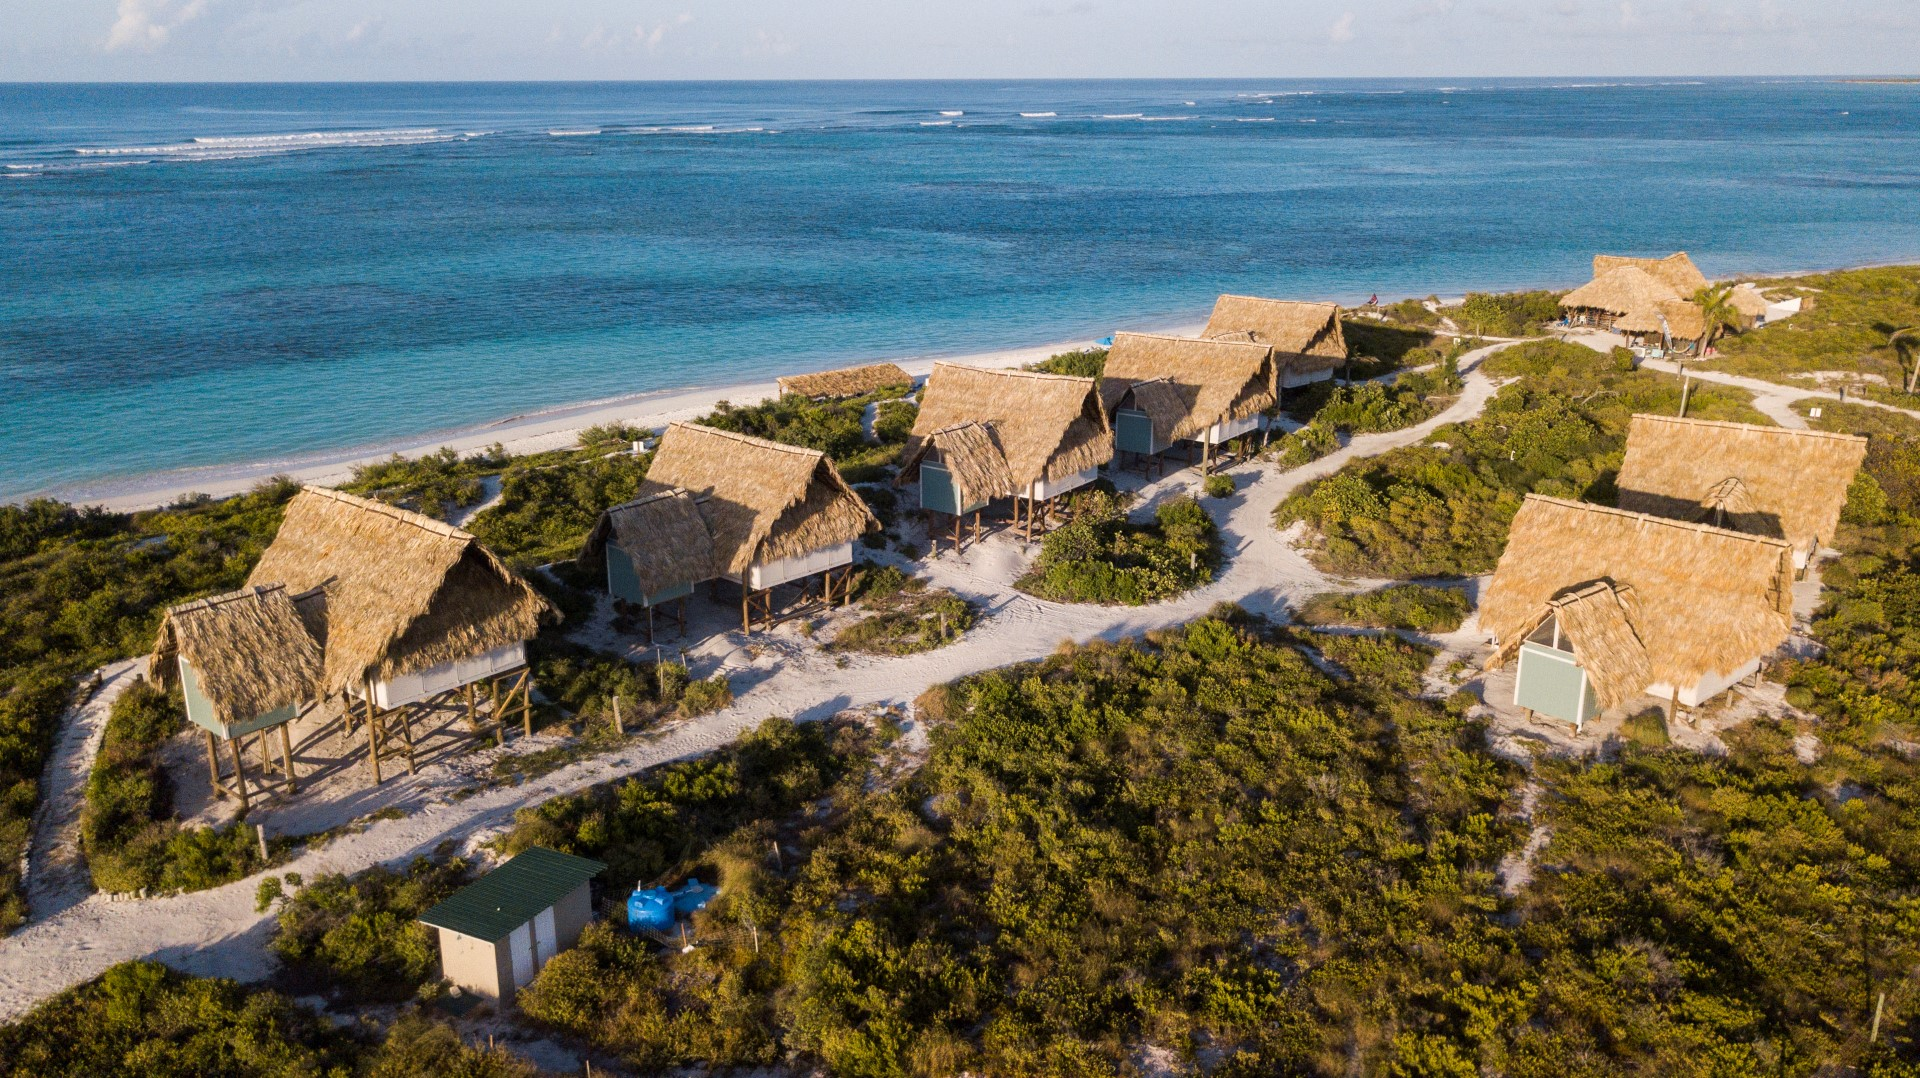 Palapas Retreats, Anegada Beach Club, BVI